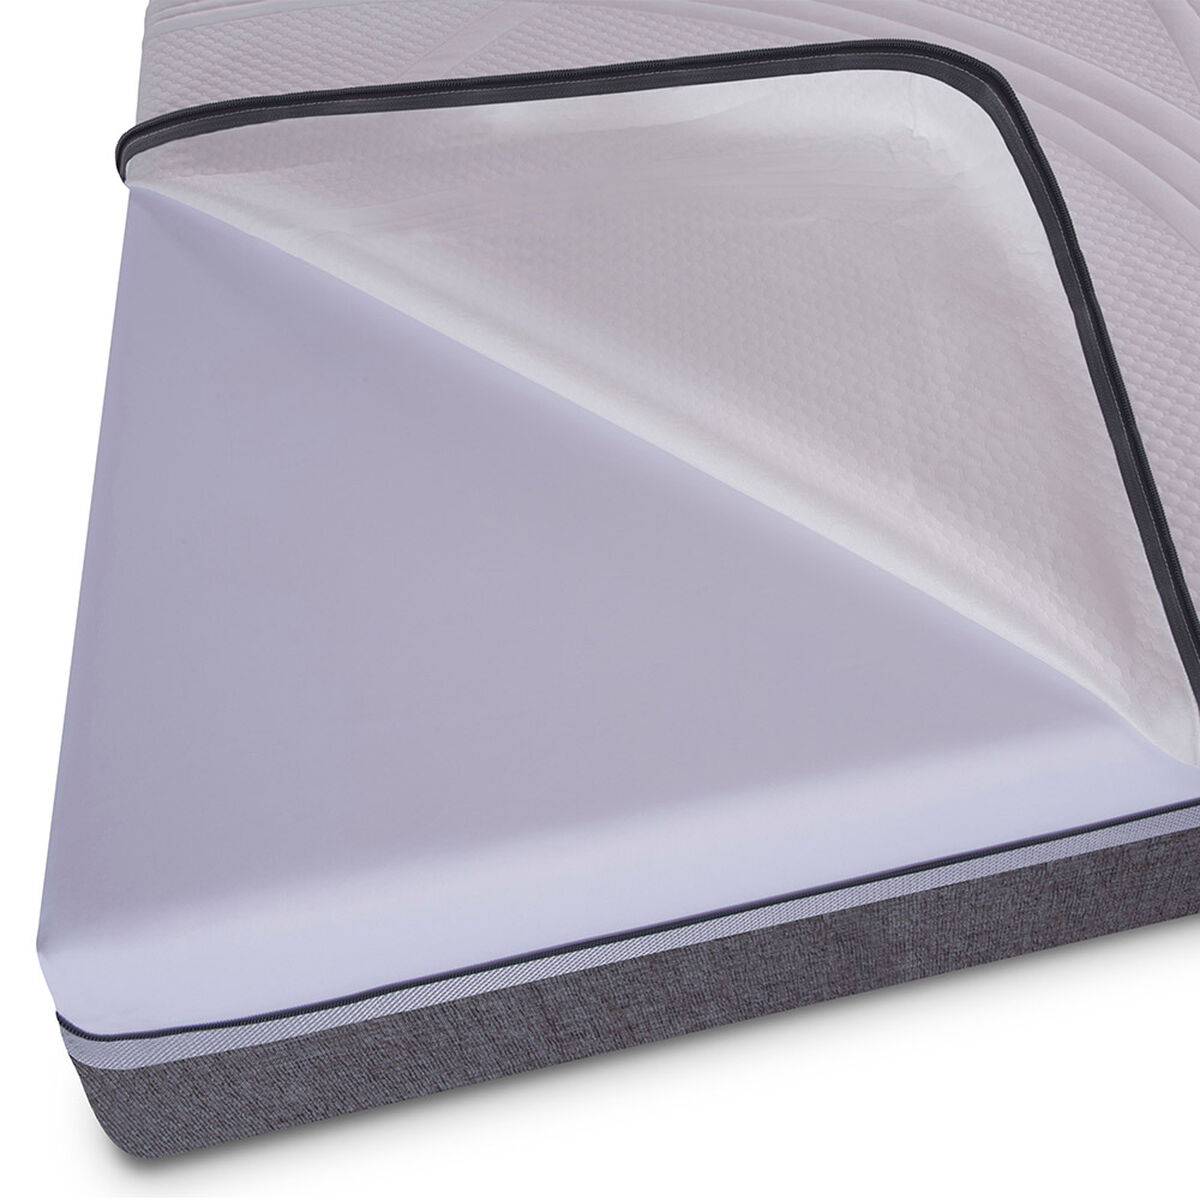 Box Spring 2 Plazas Ortopedic Advance + Textil